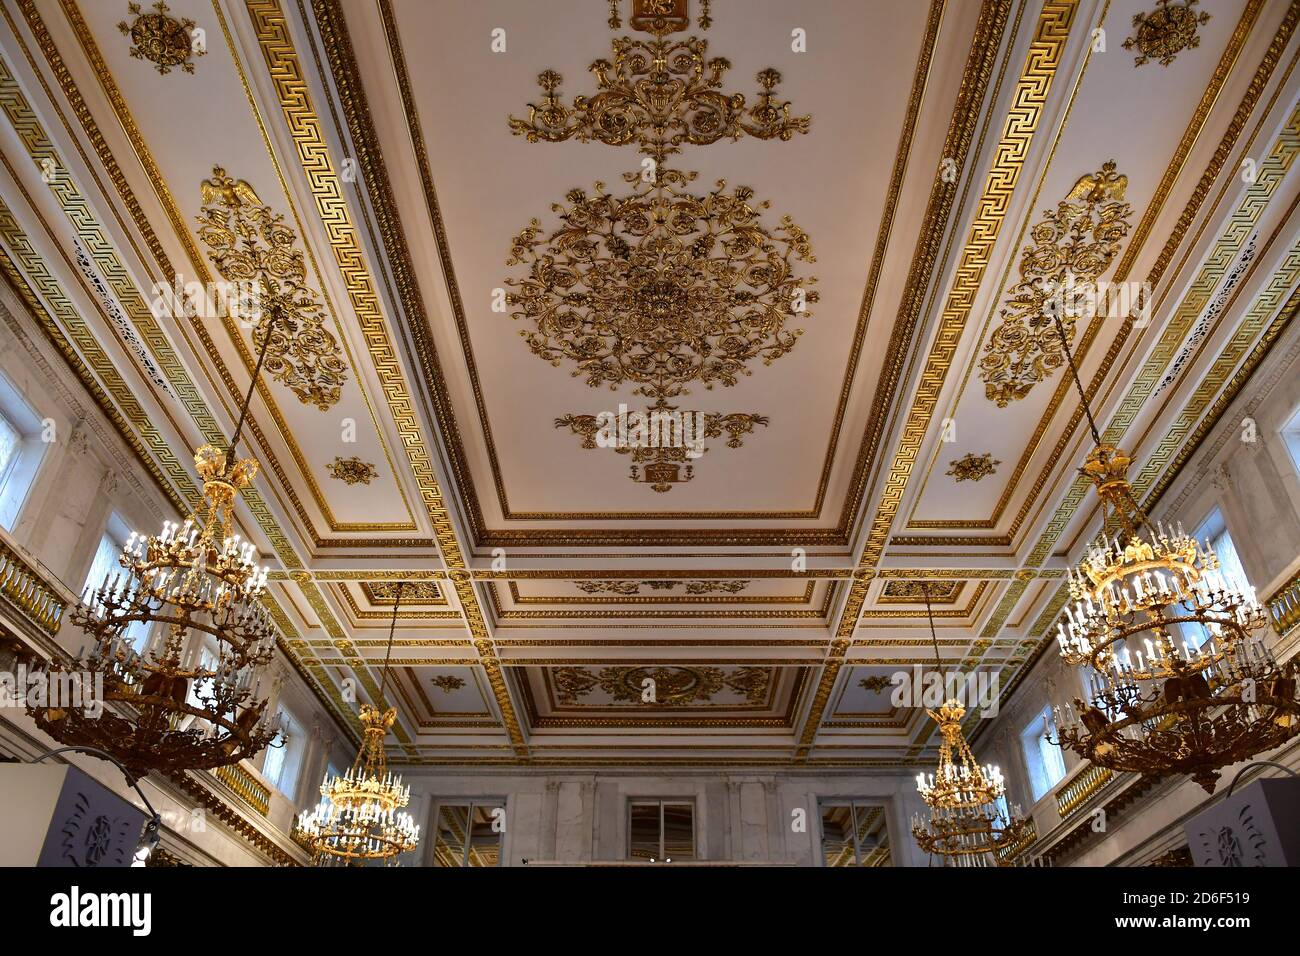 https www alamy com stgeorge hall winter palace state hermitage stpetersburg russia image382649269 html